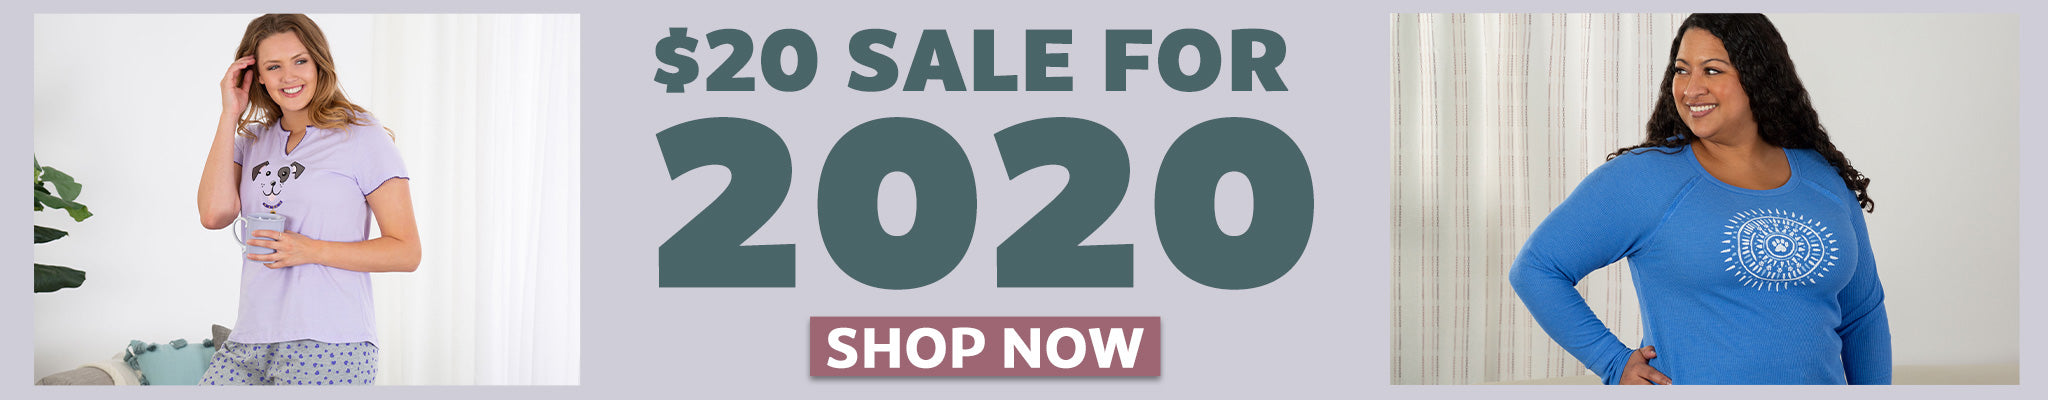 $20 Items for 2020